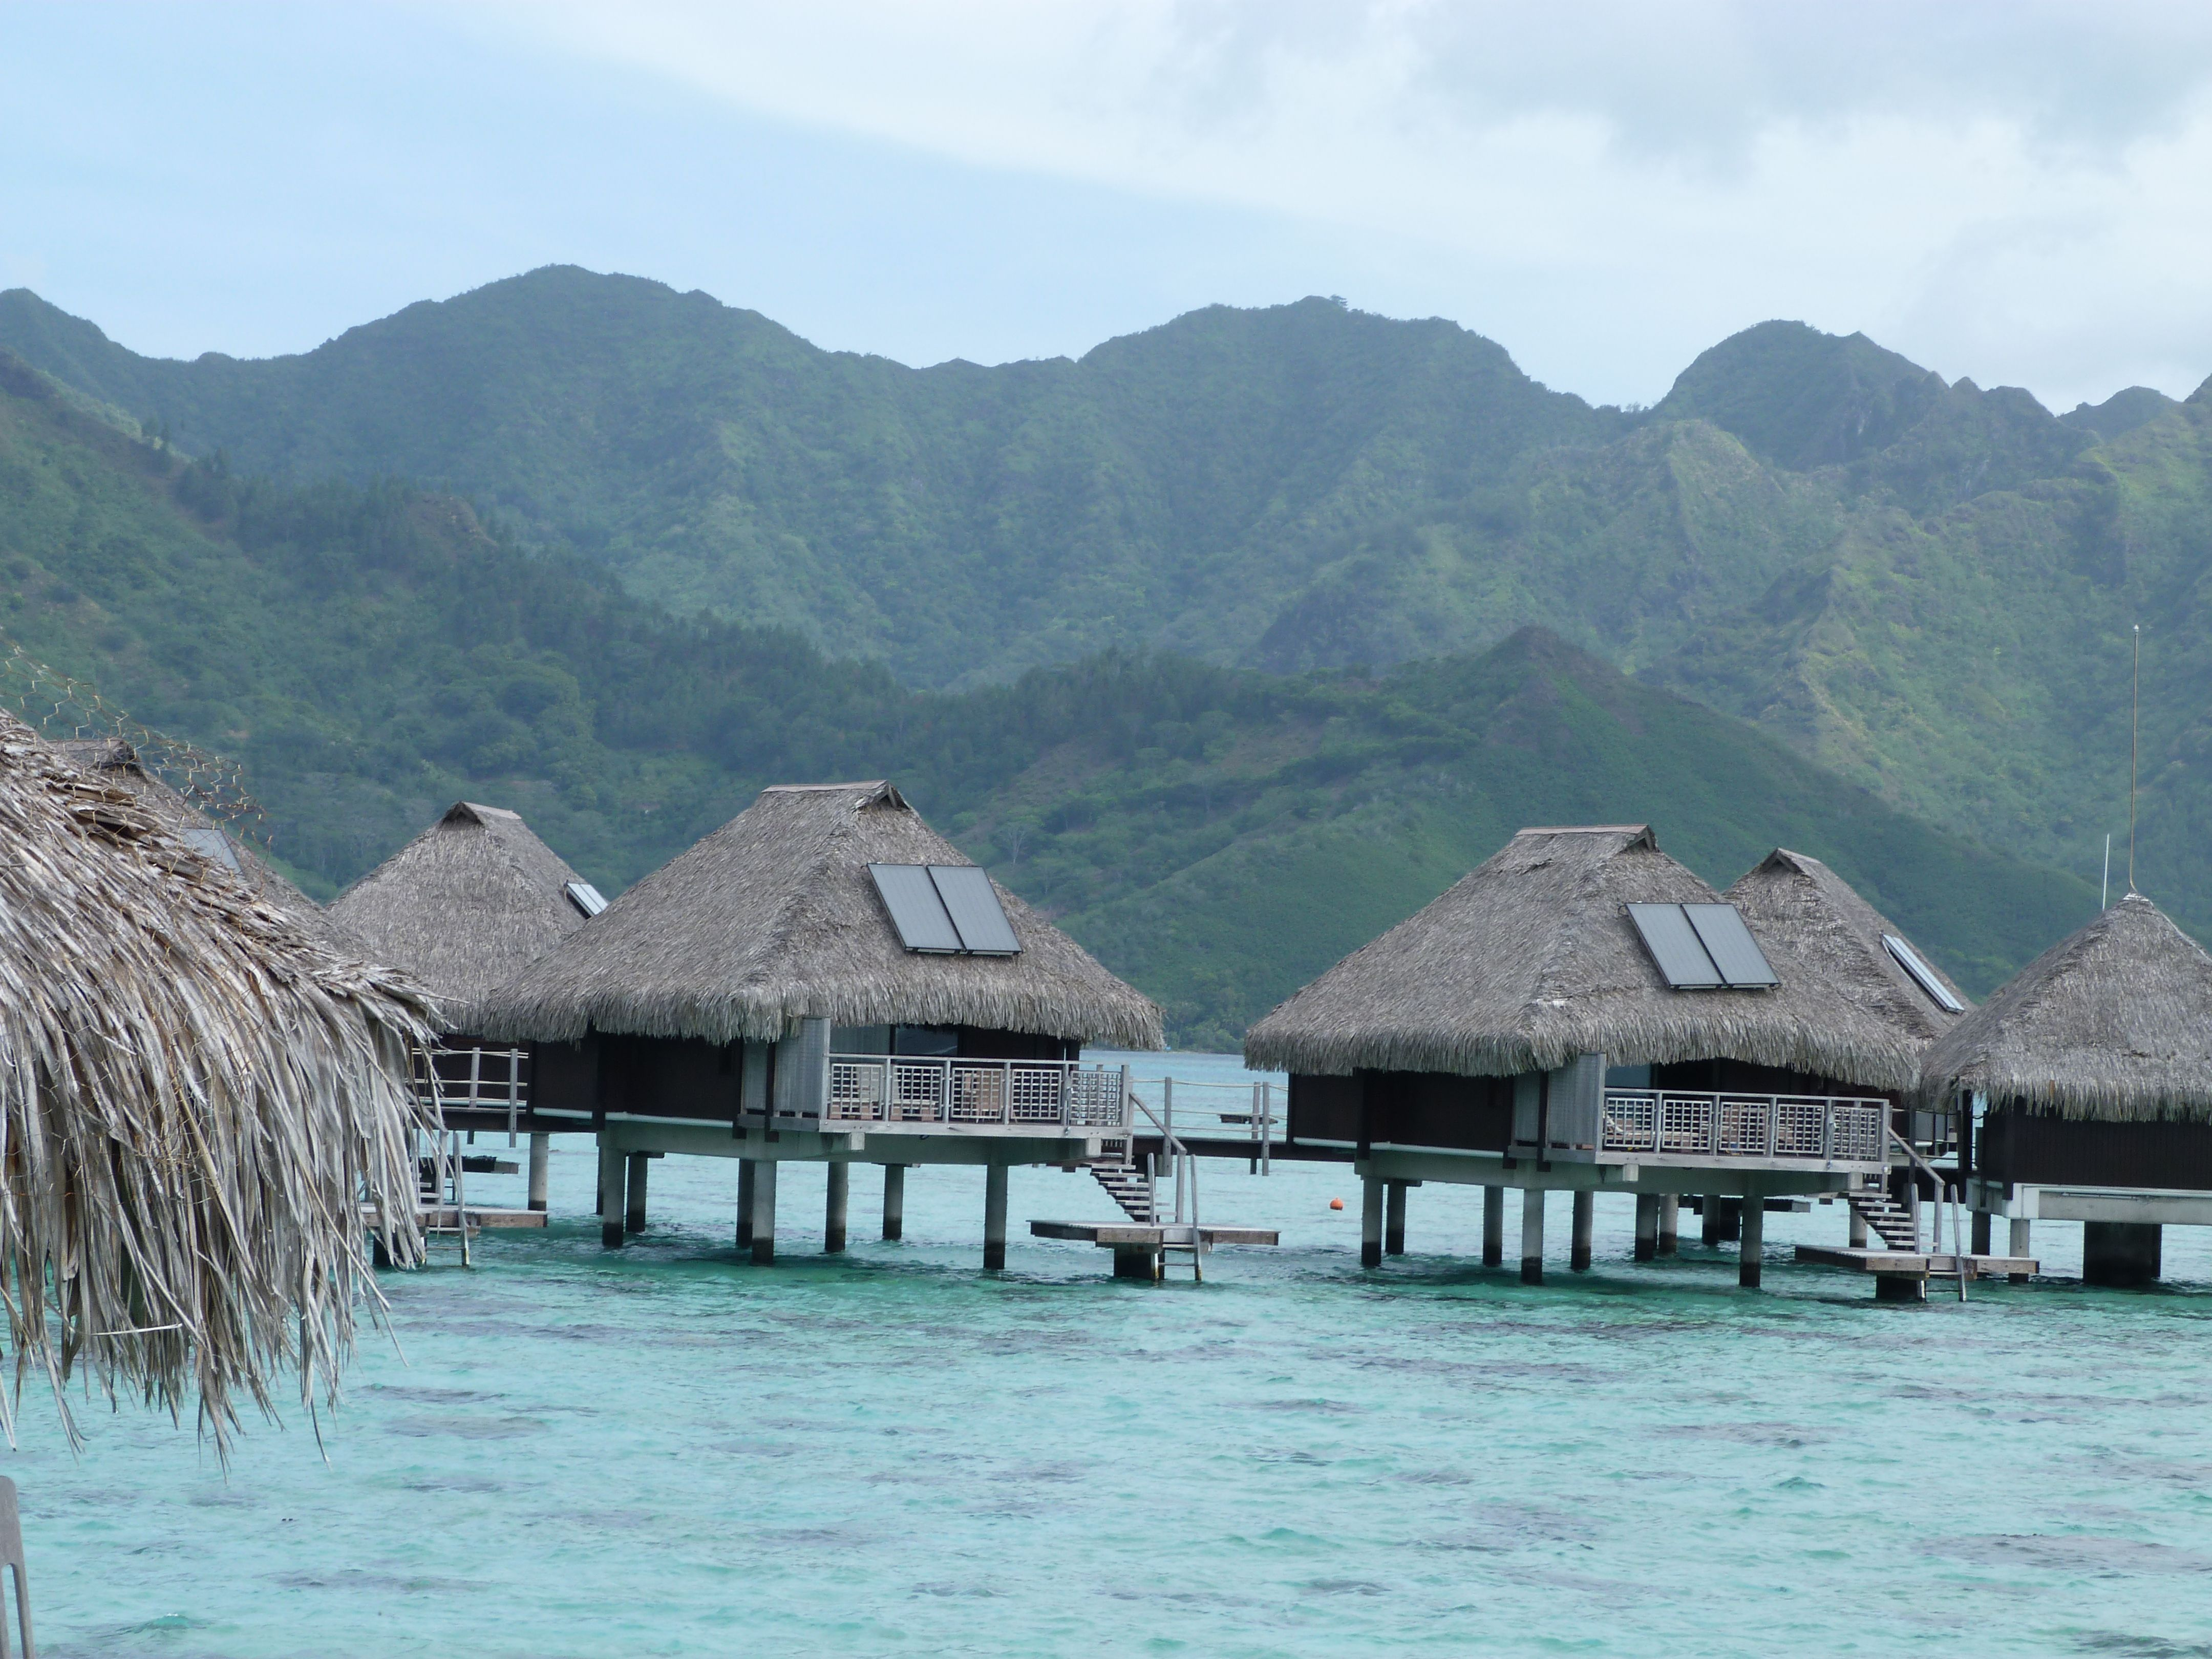 Over the Water Bungalows off the Island of Moorea in the South Pacific